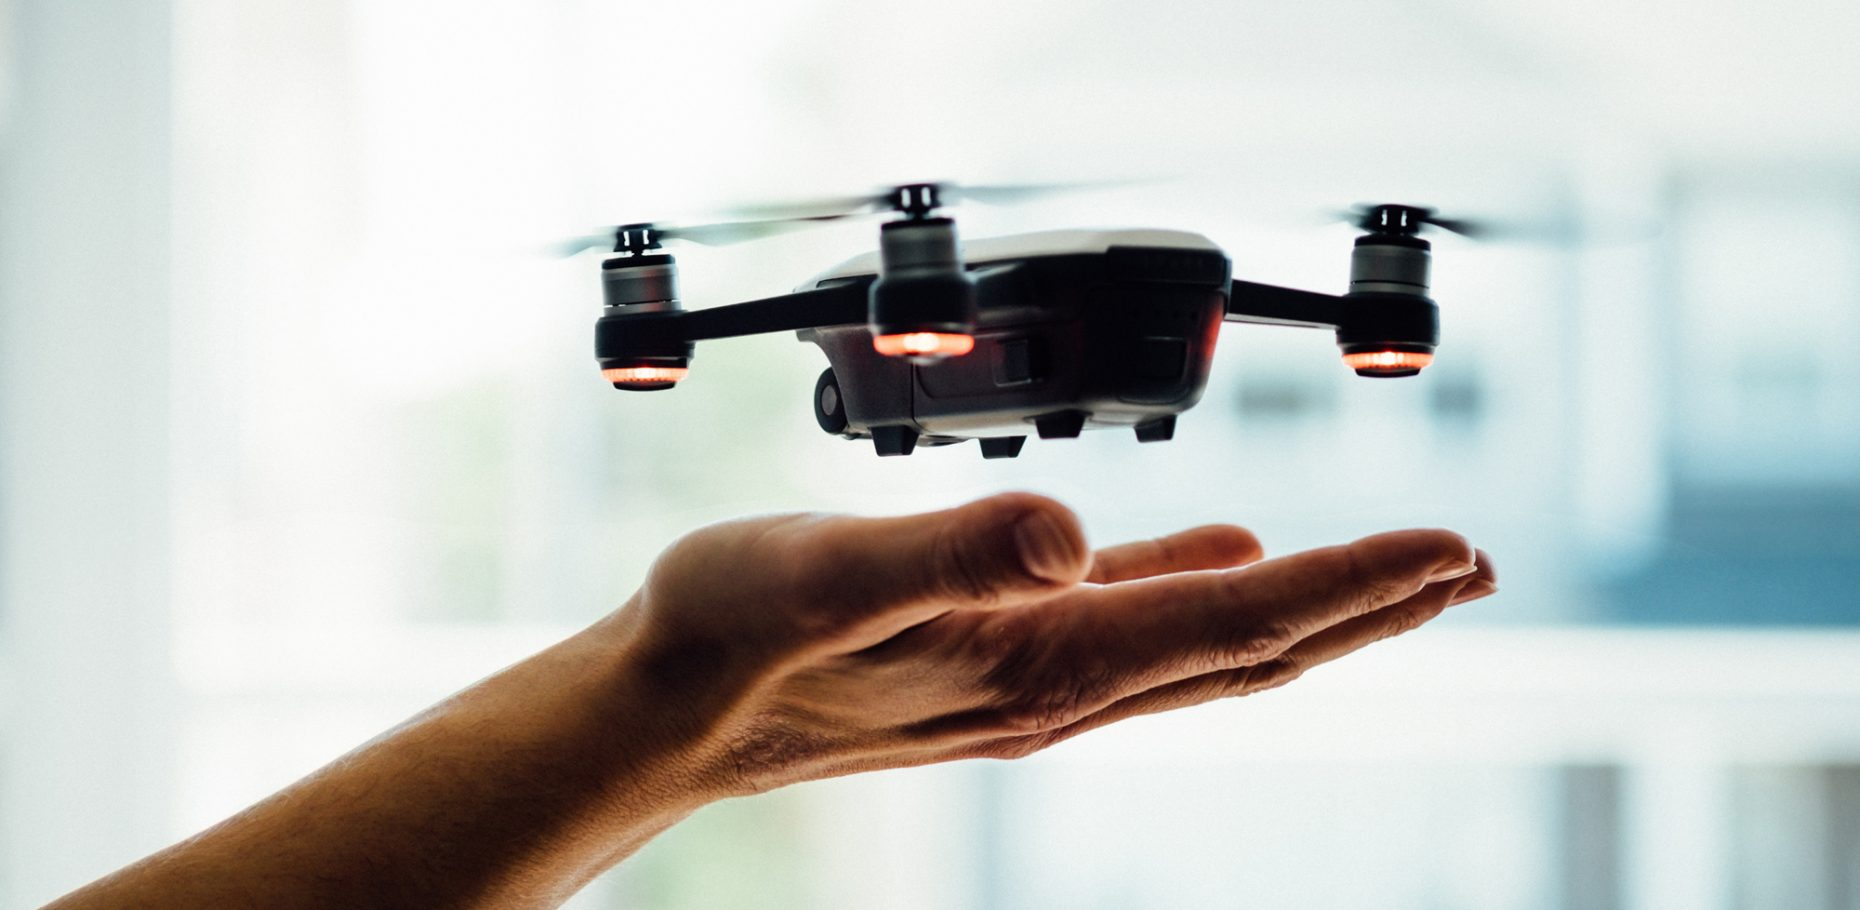 Drones can be used in the ACE industry